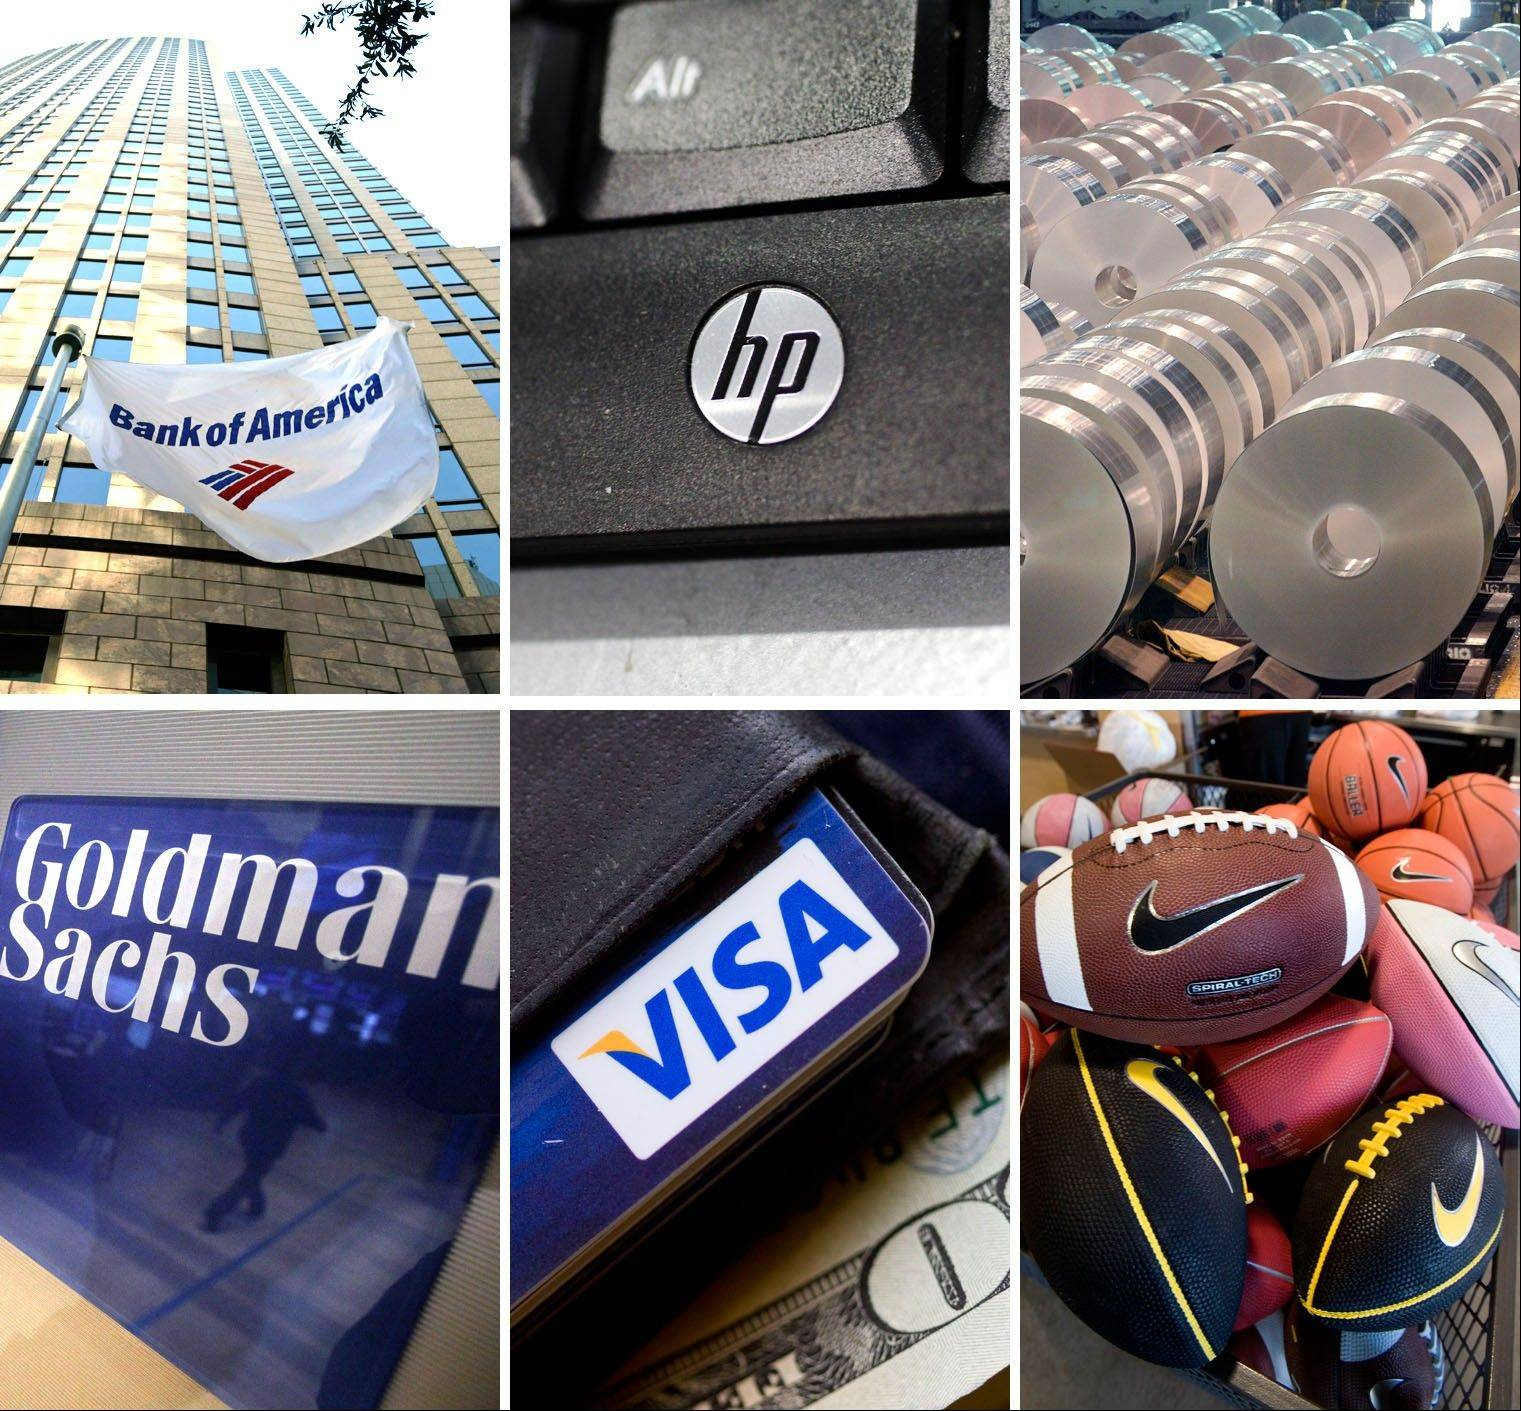 The Dow Jones industrial average announced Tuesday it will drop Bank of America, Hewlett-Packard and Alcoa, its three lowest-priced stocks, and replace them with Goldman Sachs, Nike, and Visa.